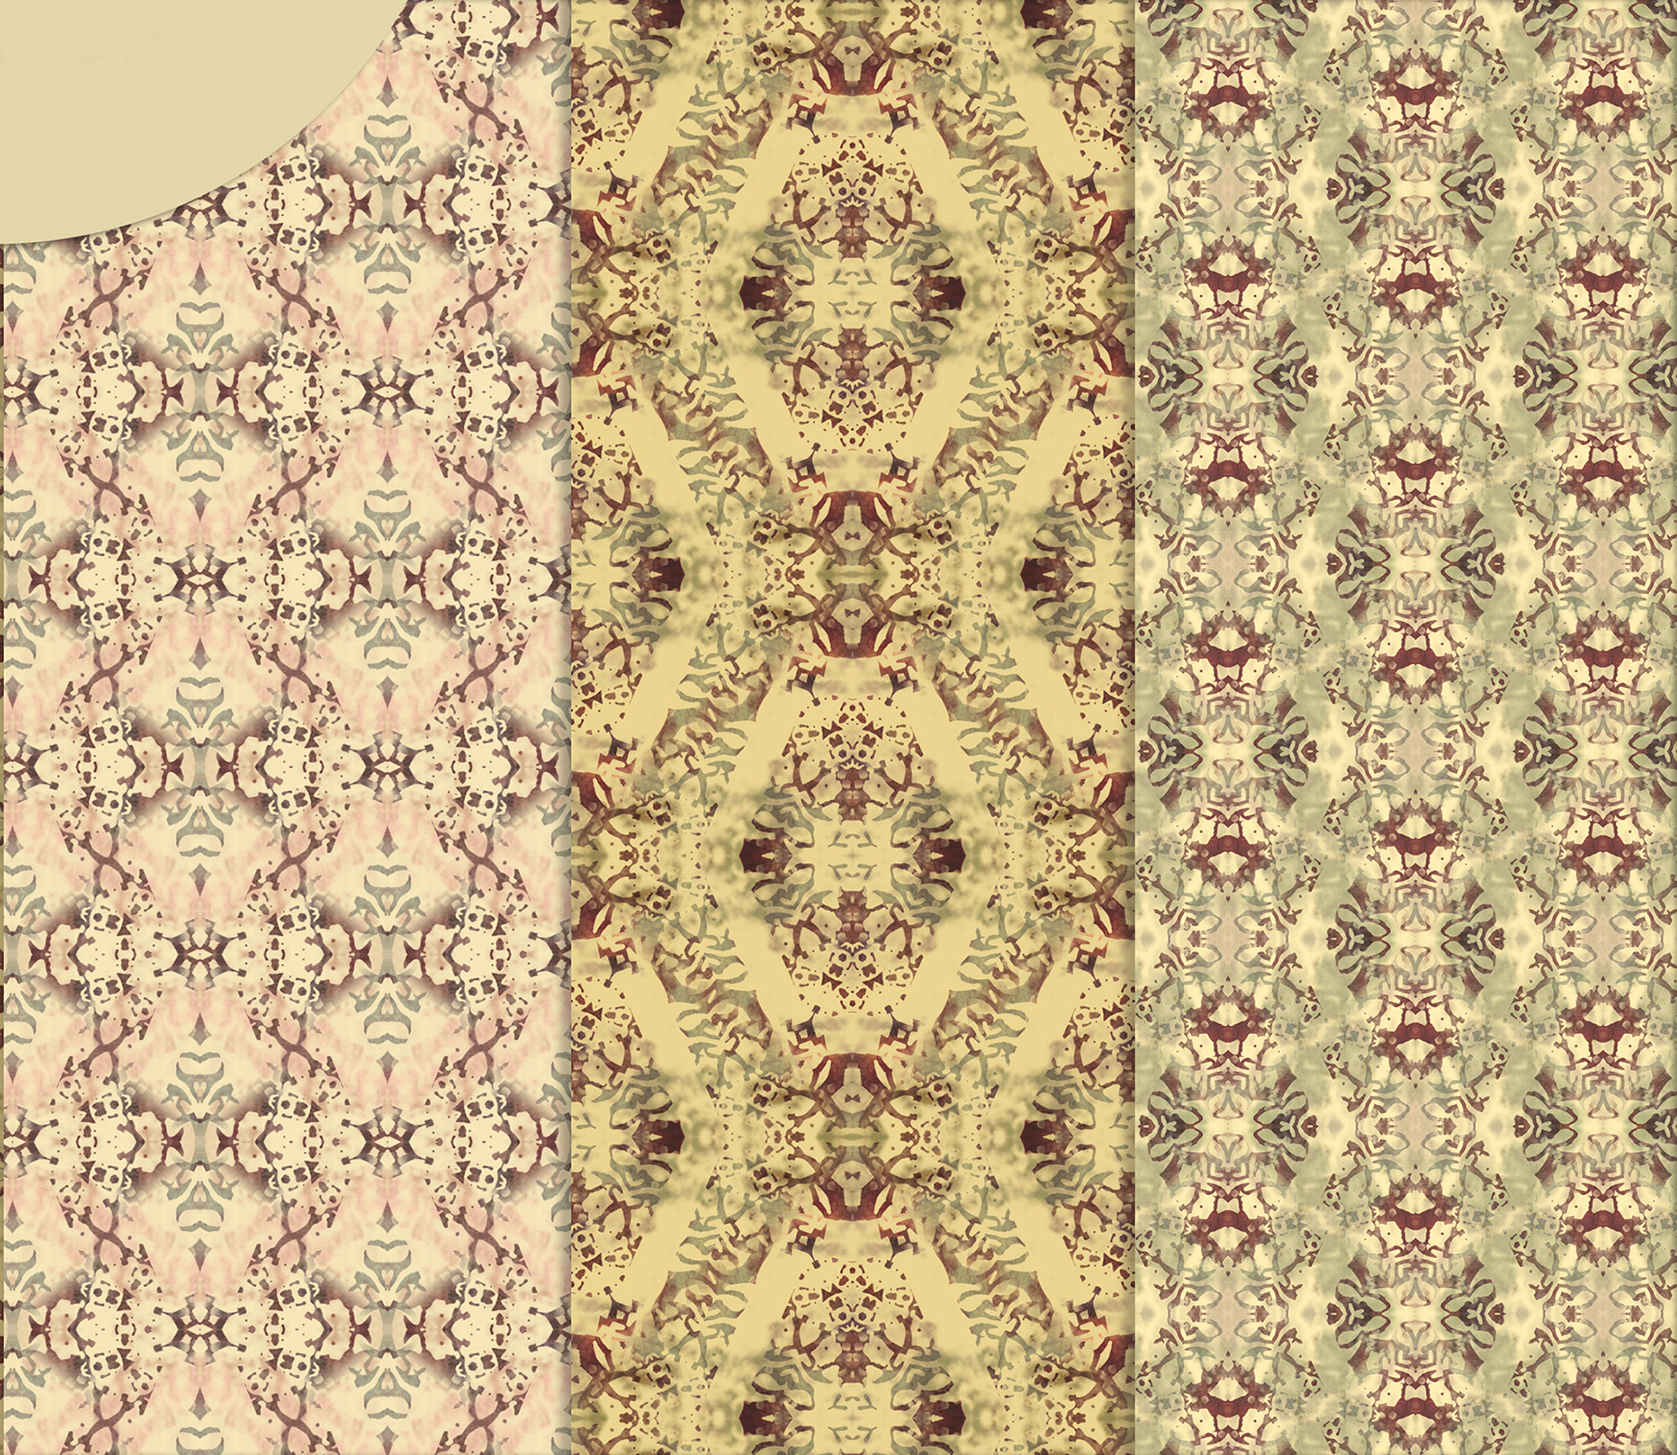 Vintage Abstract Patterns, Digital Scrapbook Paper example image 2